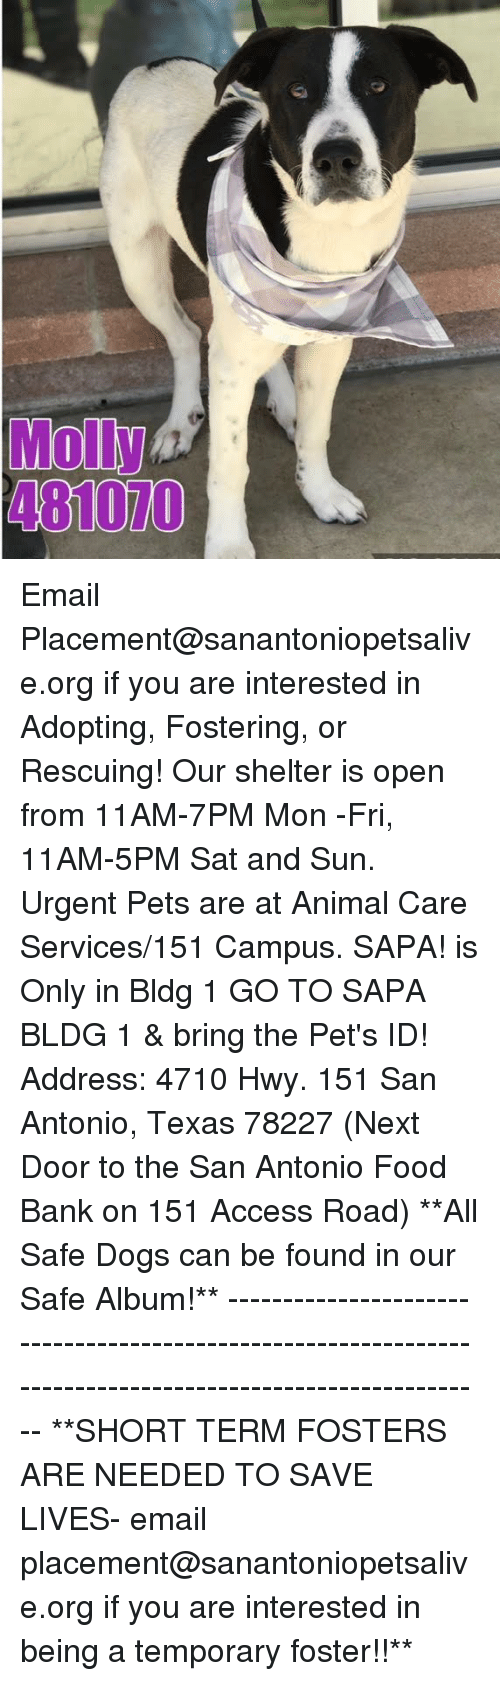 Dogs, Food, and Memes: Molly  481070 Email Placement@sanantoniopetsalive.org if you are interested in Adopting, Fostering, or Rescuing!  Our shelter is open from 11AM-7PM Mon -Fri, 11AM-5PM Sat and Sun.  Urgent Pets are at Animal Care Services/151 Campus. SAPA! is Only in Bldg 1 GO TO SAPA BLDG 1 & bring the Pet's ID! Address: 4710 Hwy. 151 San Antonio, Texas 78227 (Next Door to the San Antonio Food Bank on 151 Access Road)  **All Safe Dogs can be found in our Safe Album!** ---------------------------------------------------------------------------------------------------------- **SHORT TERM FOSTERS ARE NEEDED TO SAVE LIVES- email placement@sanantoniopetsalive.org if you are interested in being a temporary foster!!**